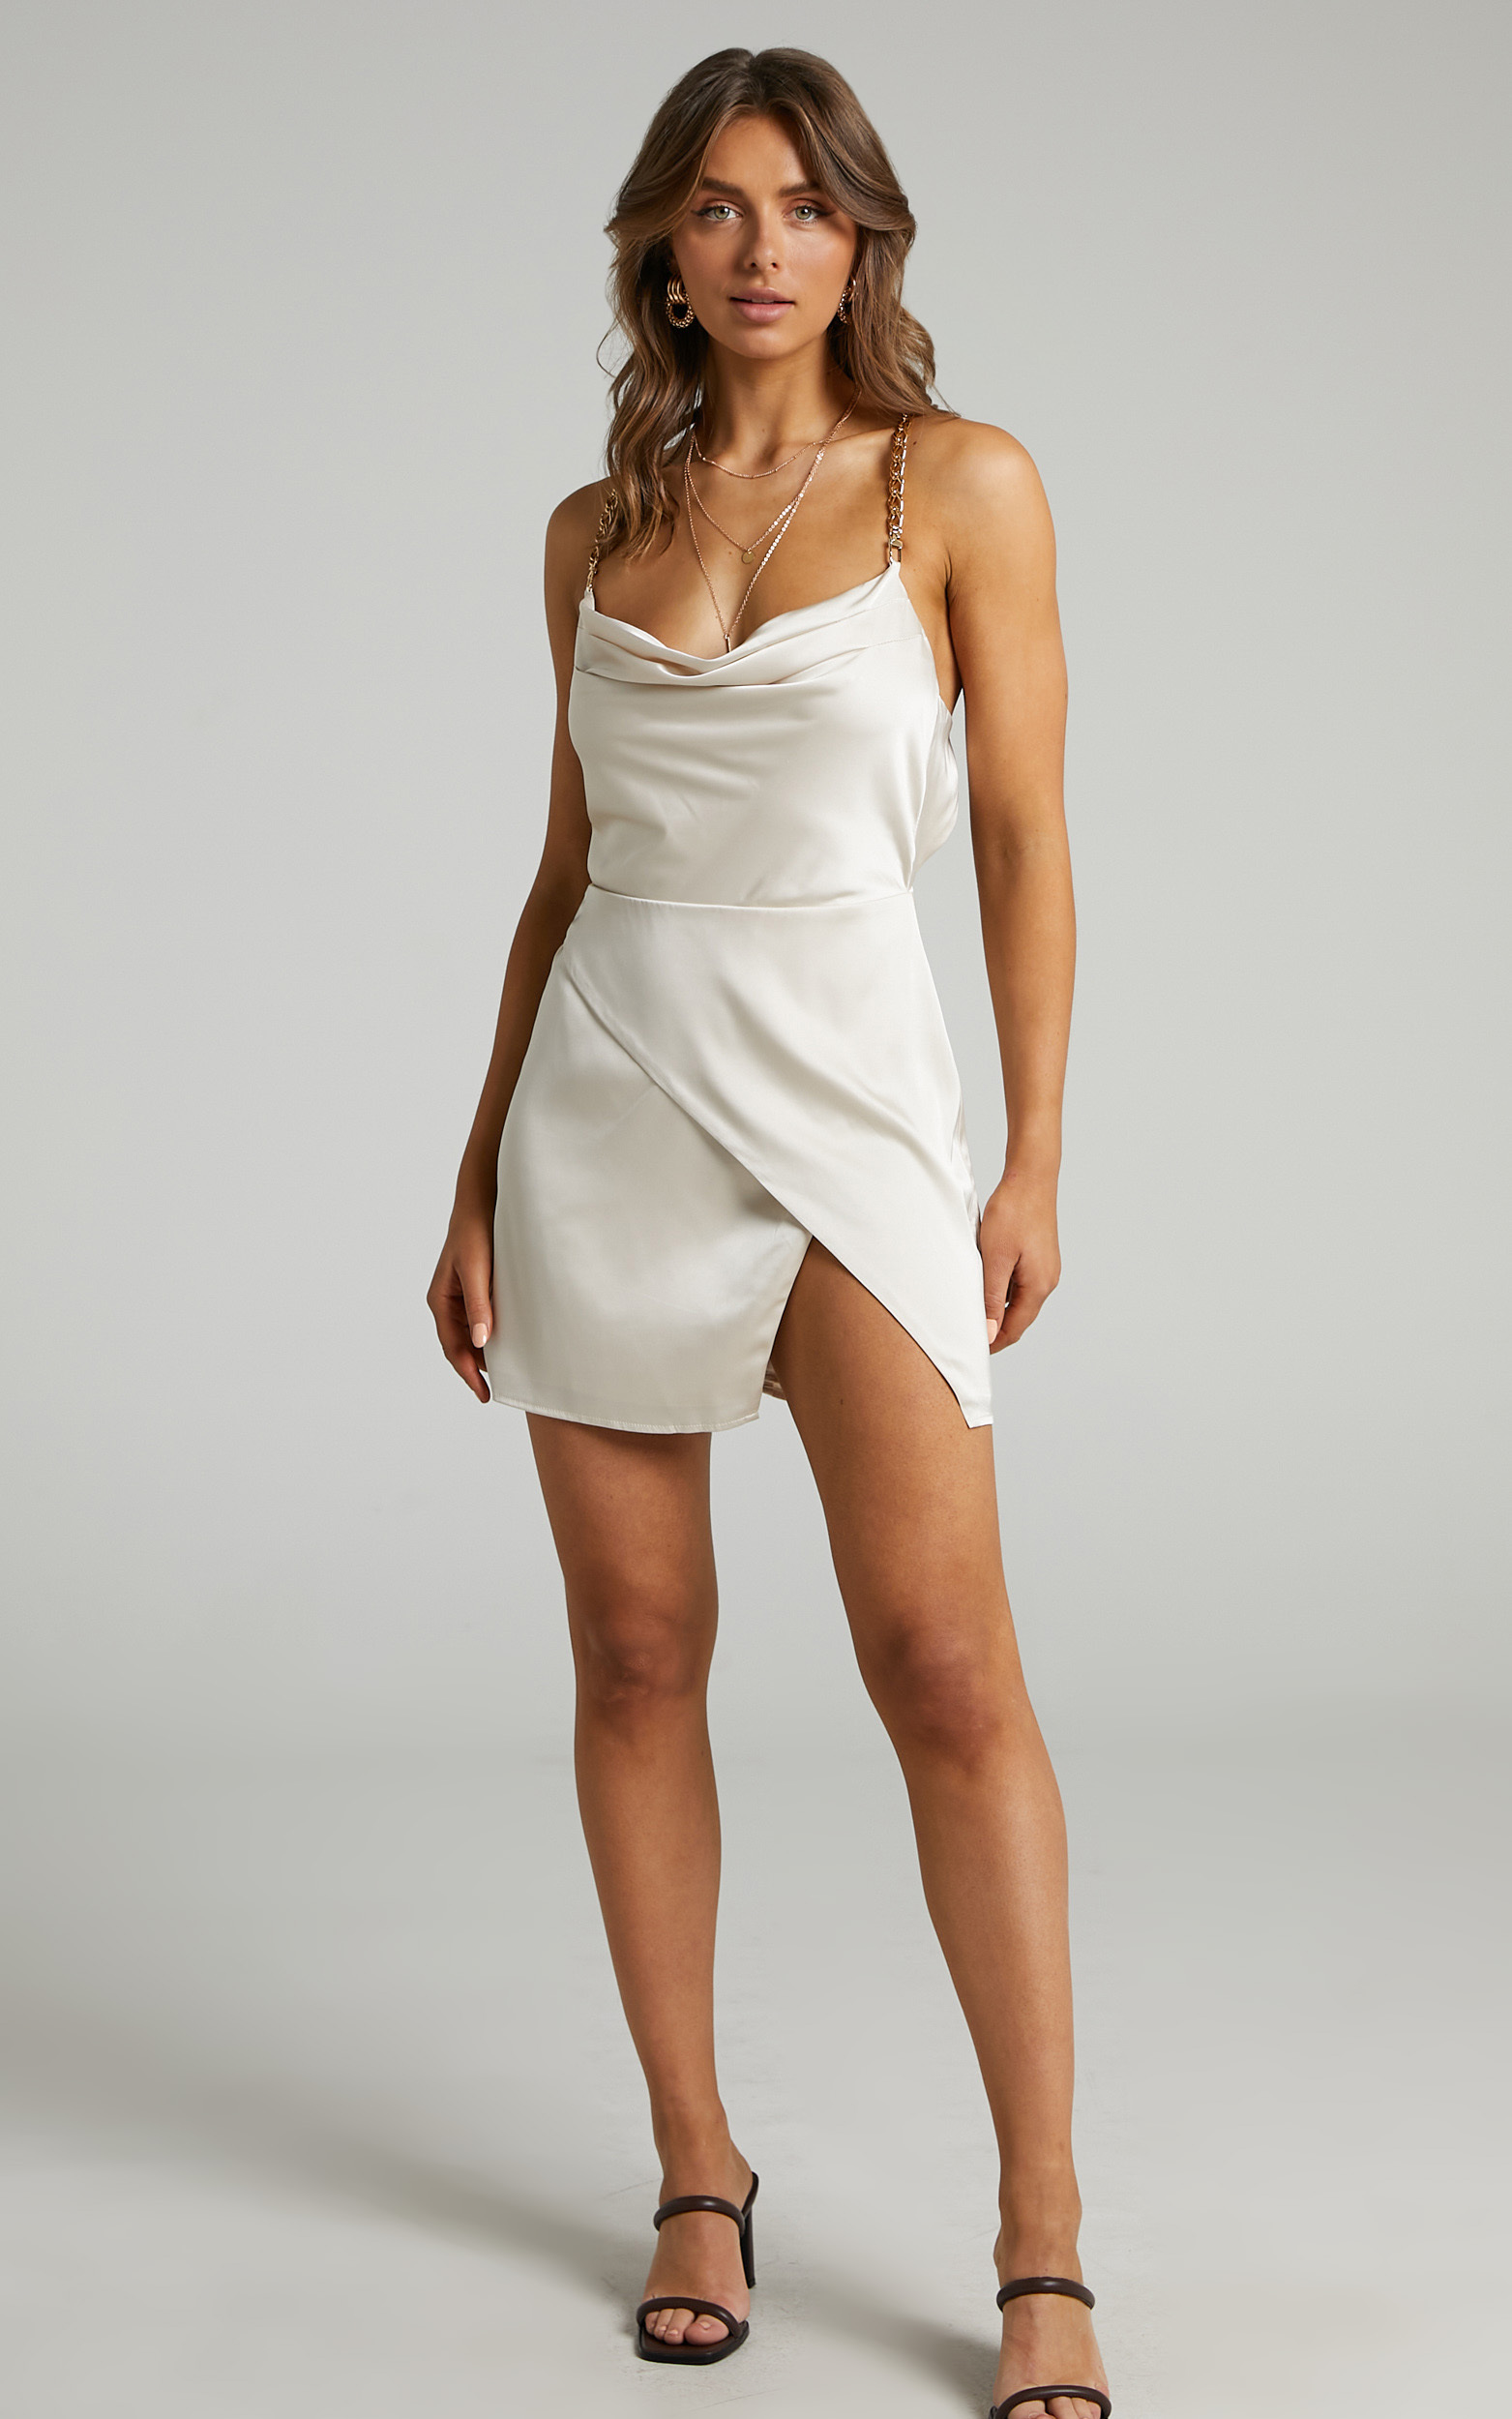 Runaway The Label - Dallas Dress in Champagne - L, NEU2, hi-res image number null